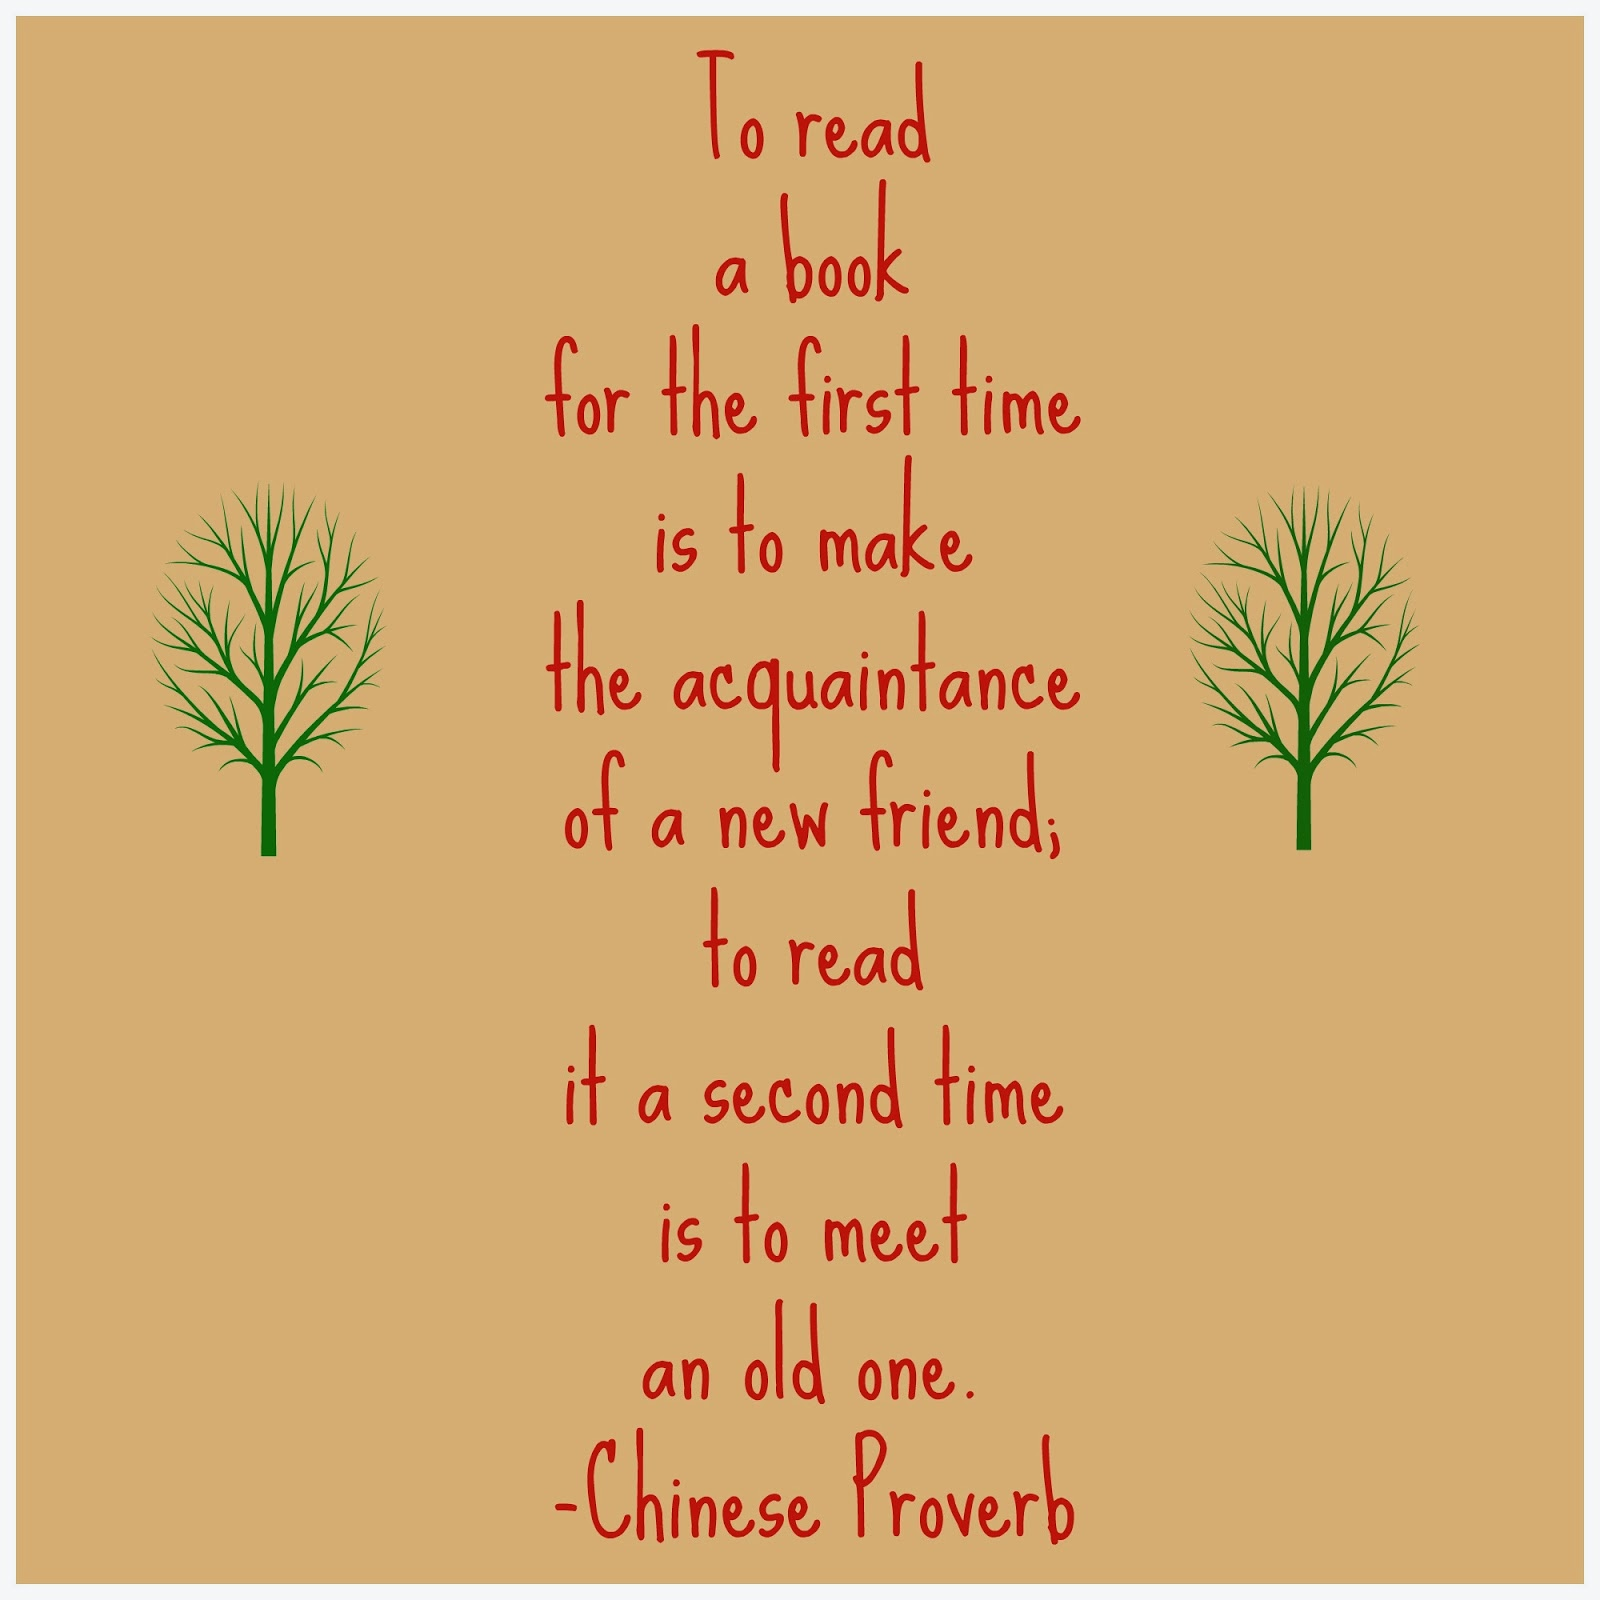 culture and chinese proverbs A study of classical chinese novels found proverb use as frequently as one proverb every 3,500 words in spanish grammar and culture through proverbs, and.